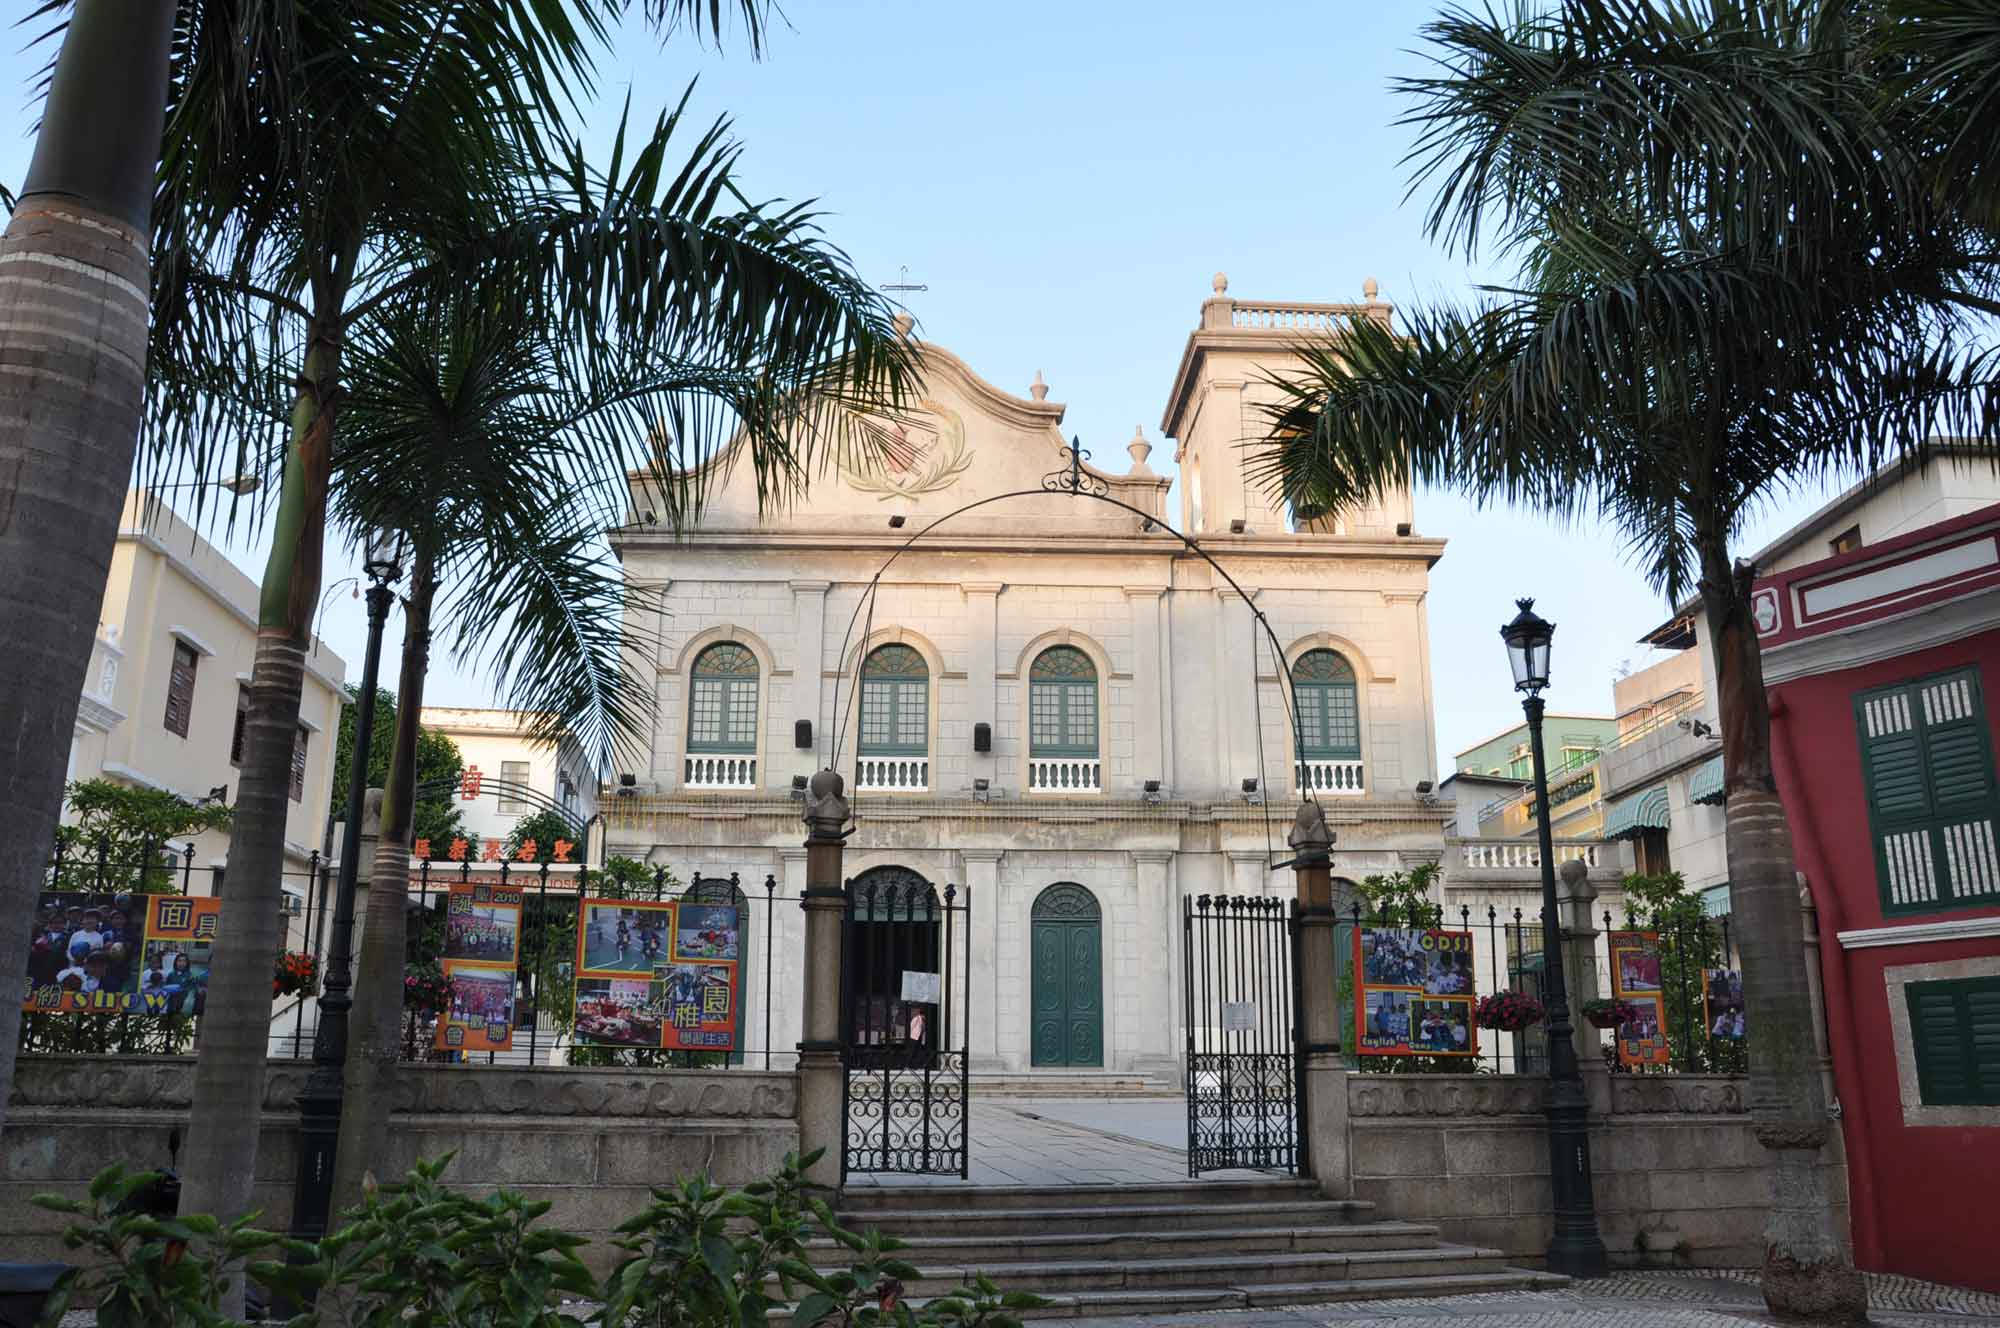 St. Lazarus Church Macau